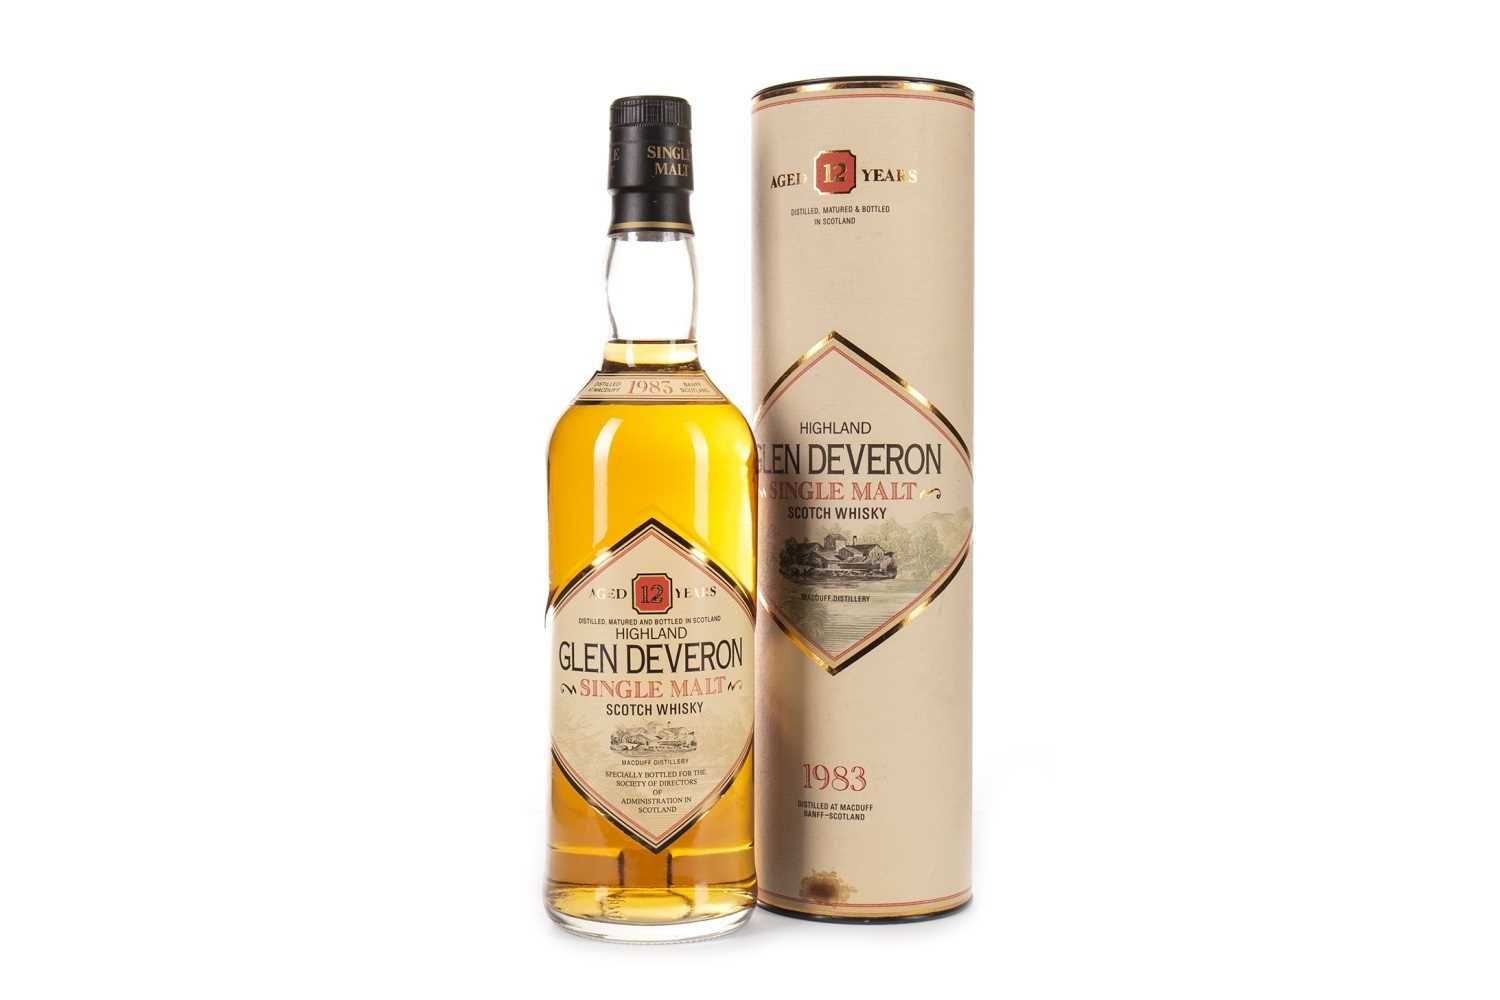 Lot 321-GLEN DEVERON 1983 AGED 12 YEARS